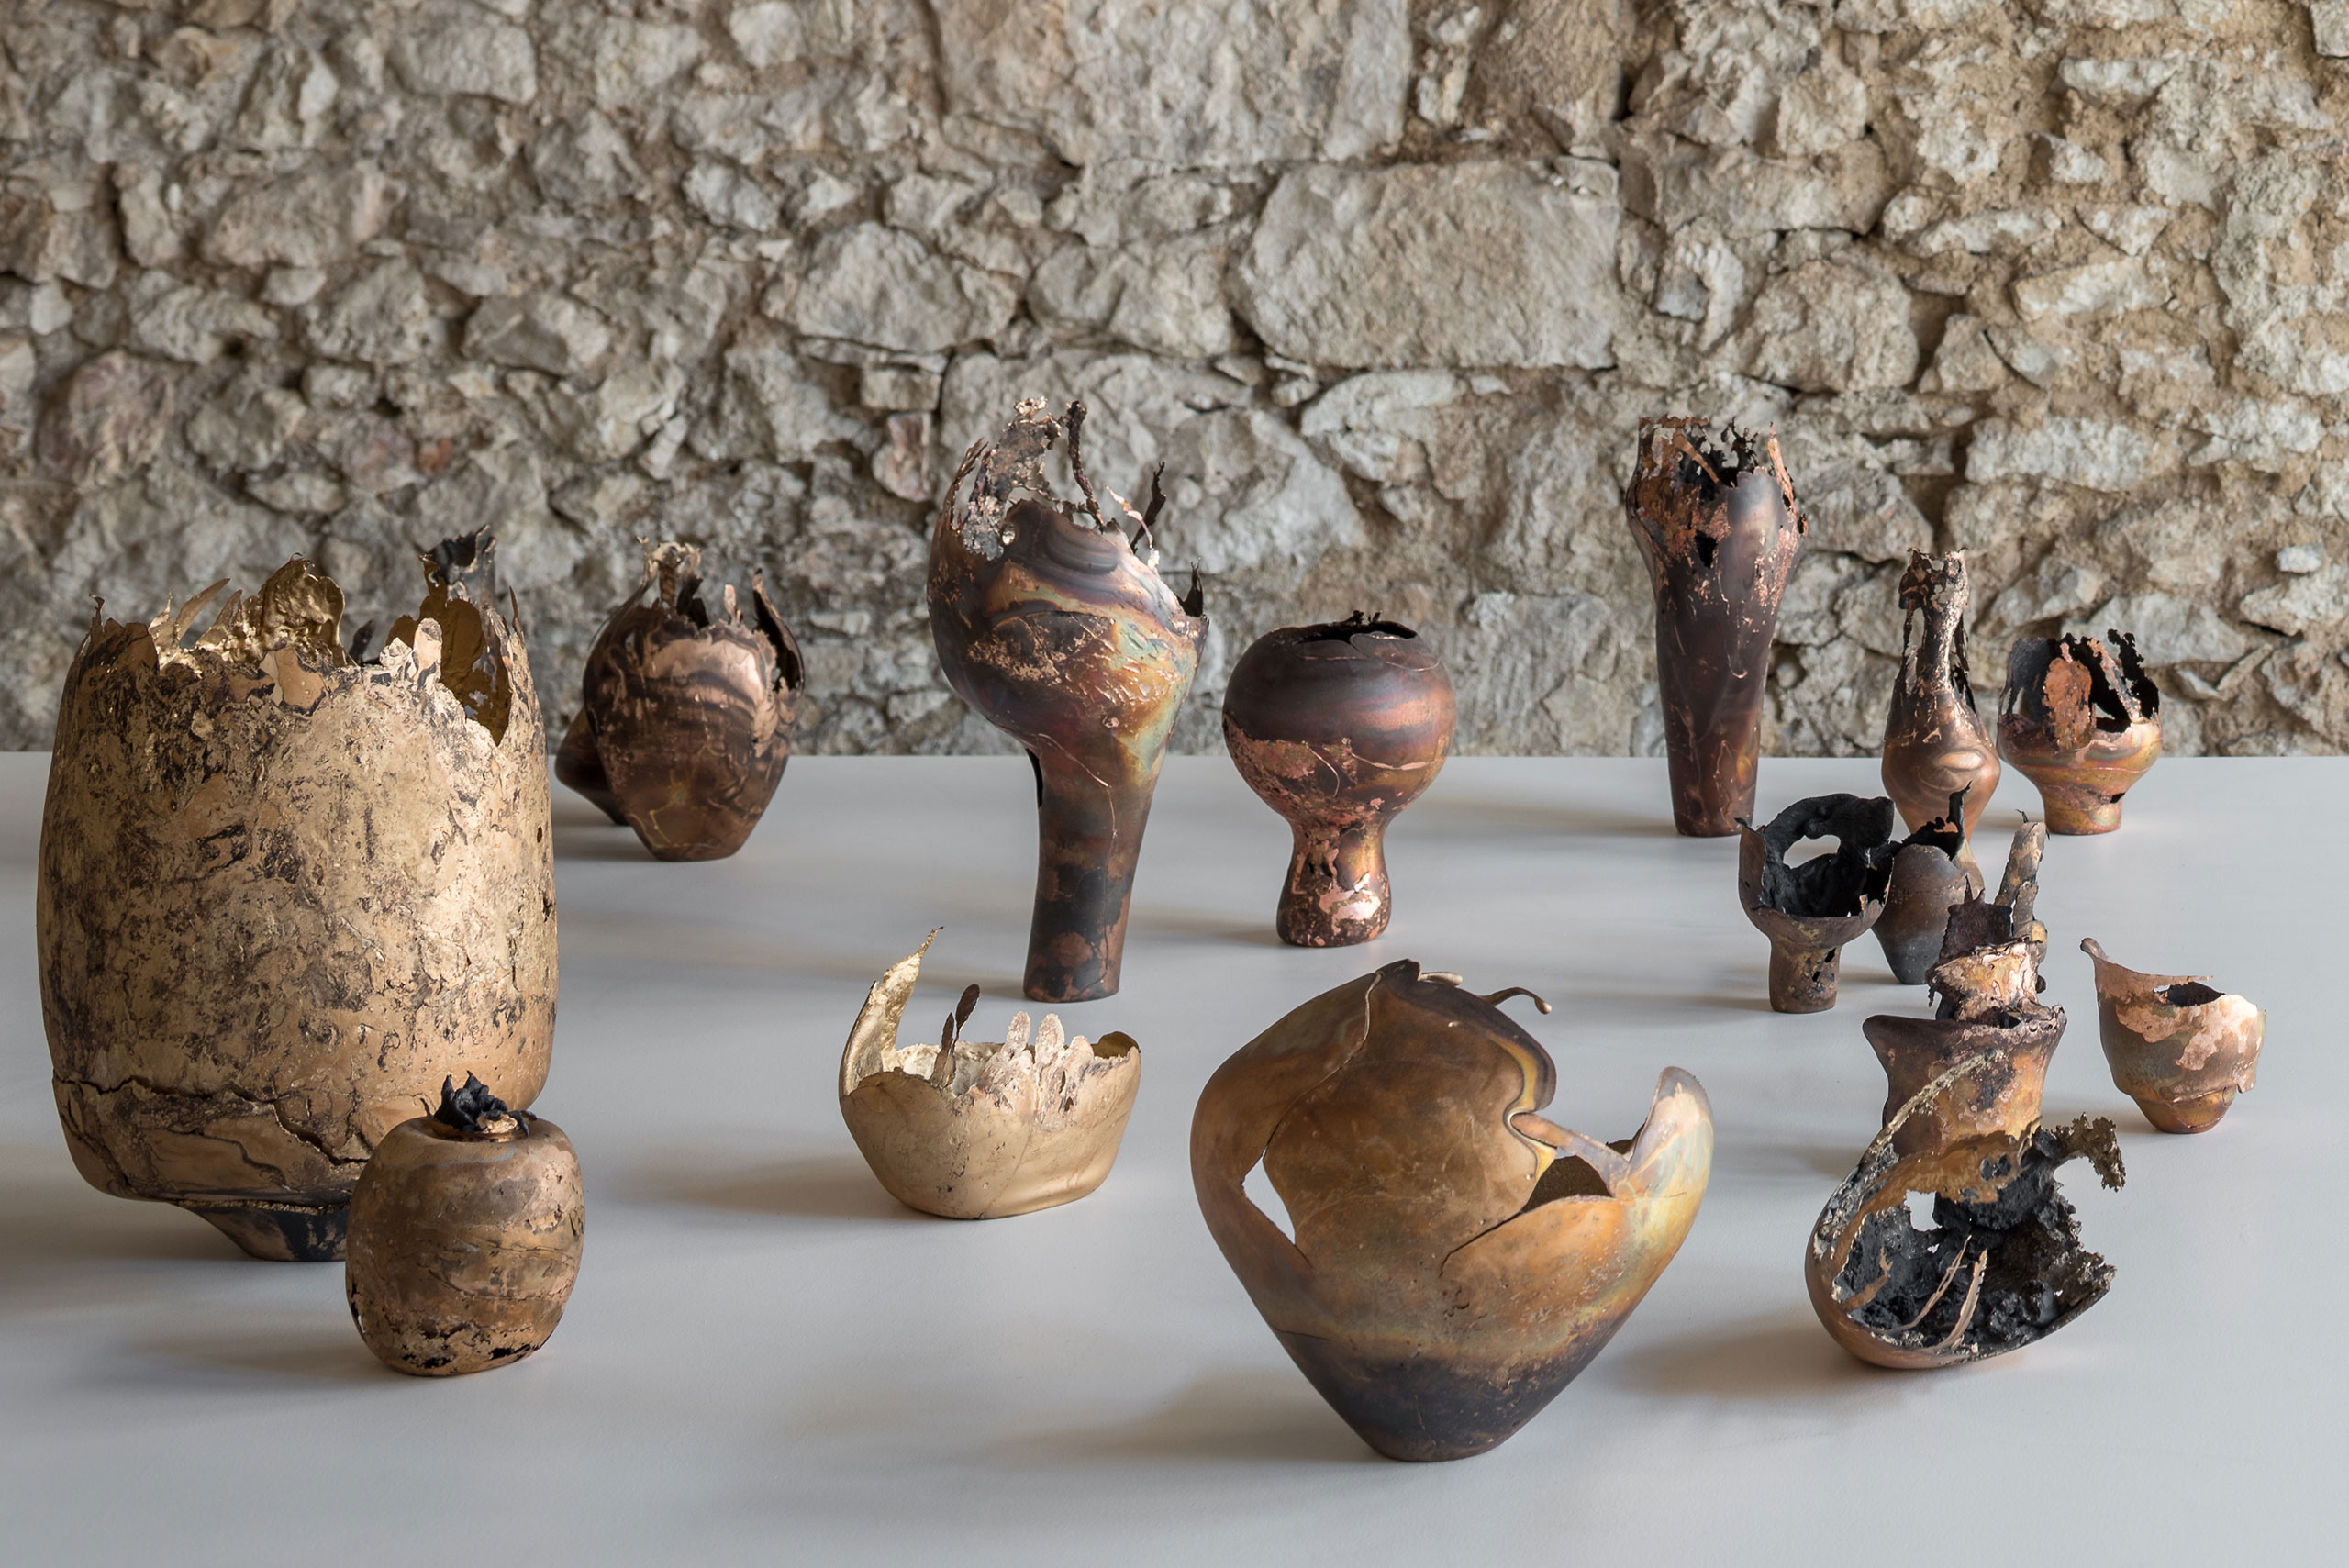 Exhibition view. Omer Arbel, 113 at Carwan gallery, Athens. Photo by Giorgos Sfakianakis.